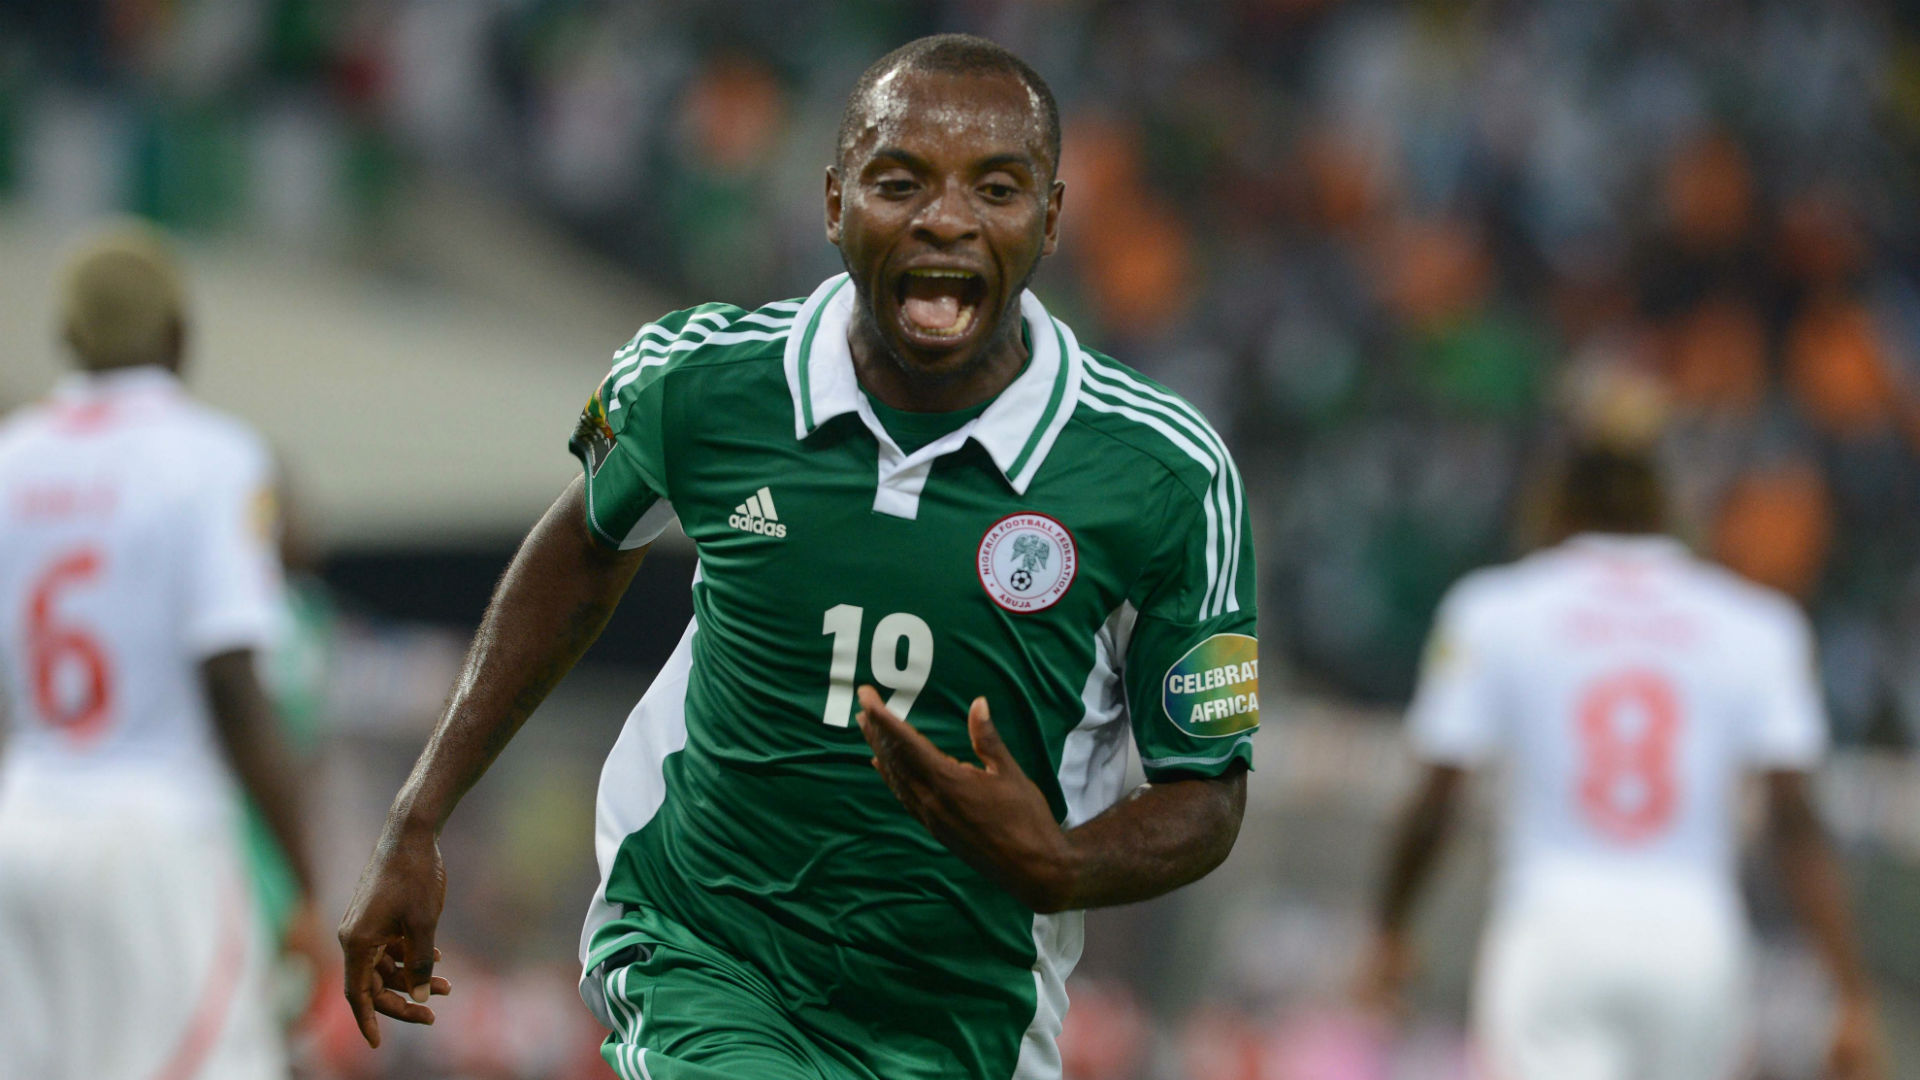 2013 AFCON Hero Sunday Mba Wants A Return To Football